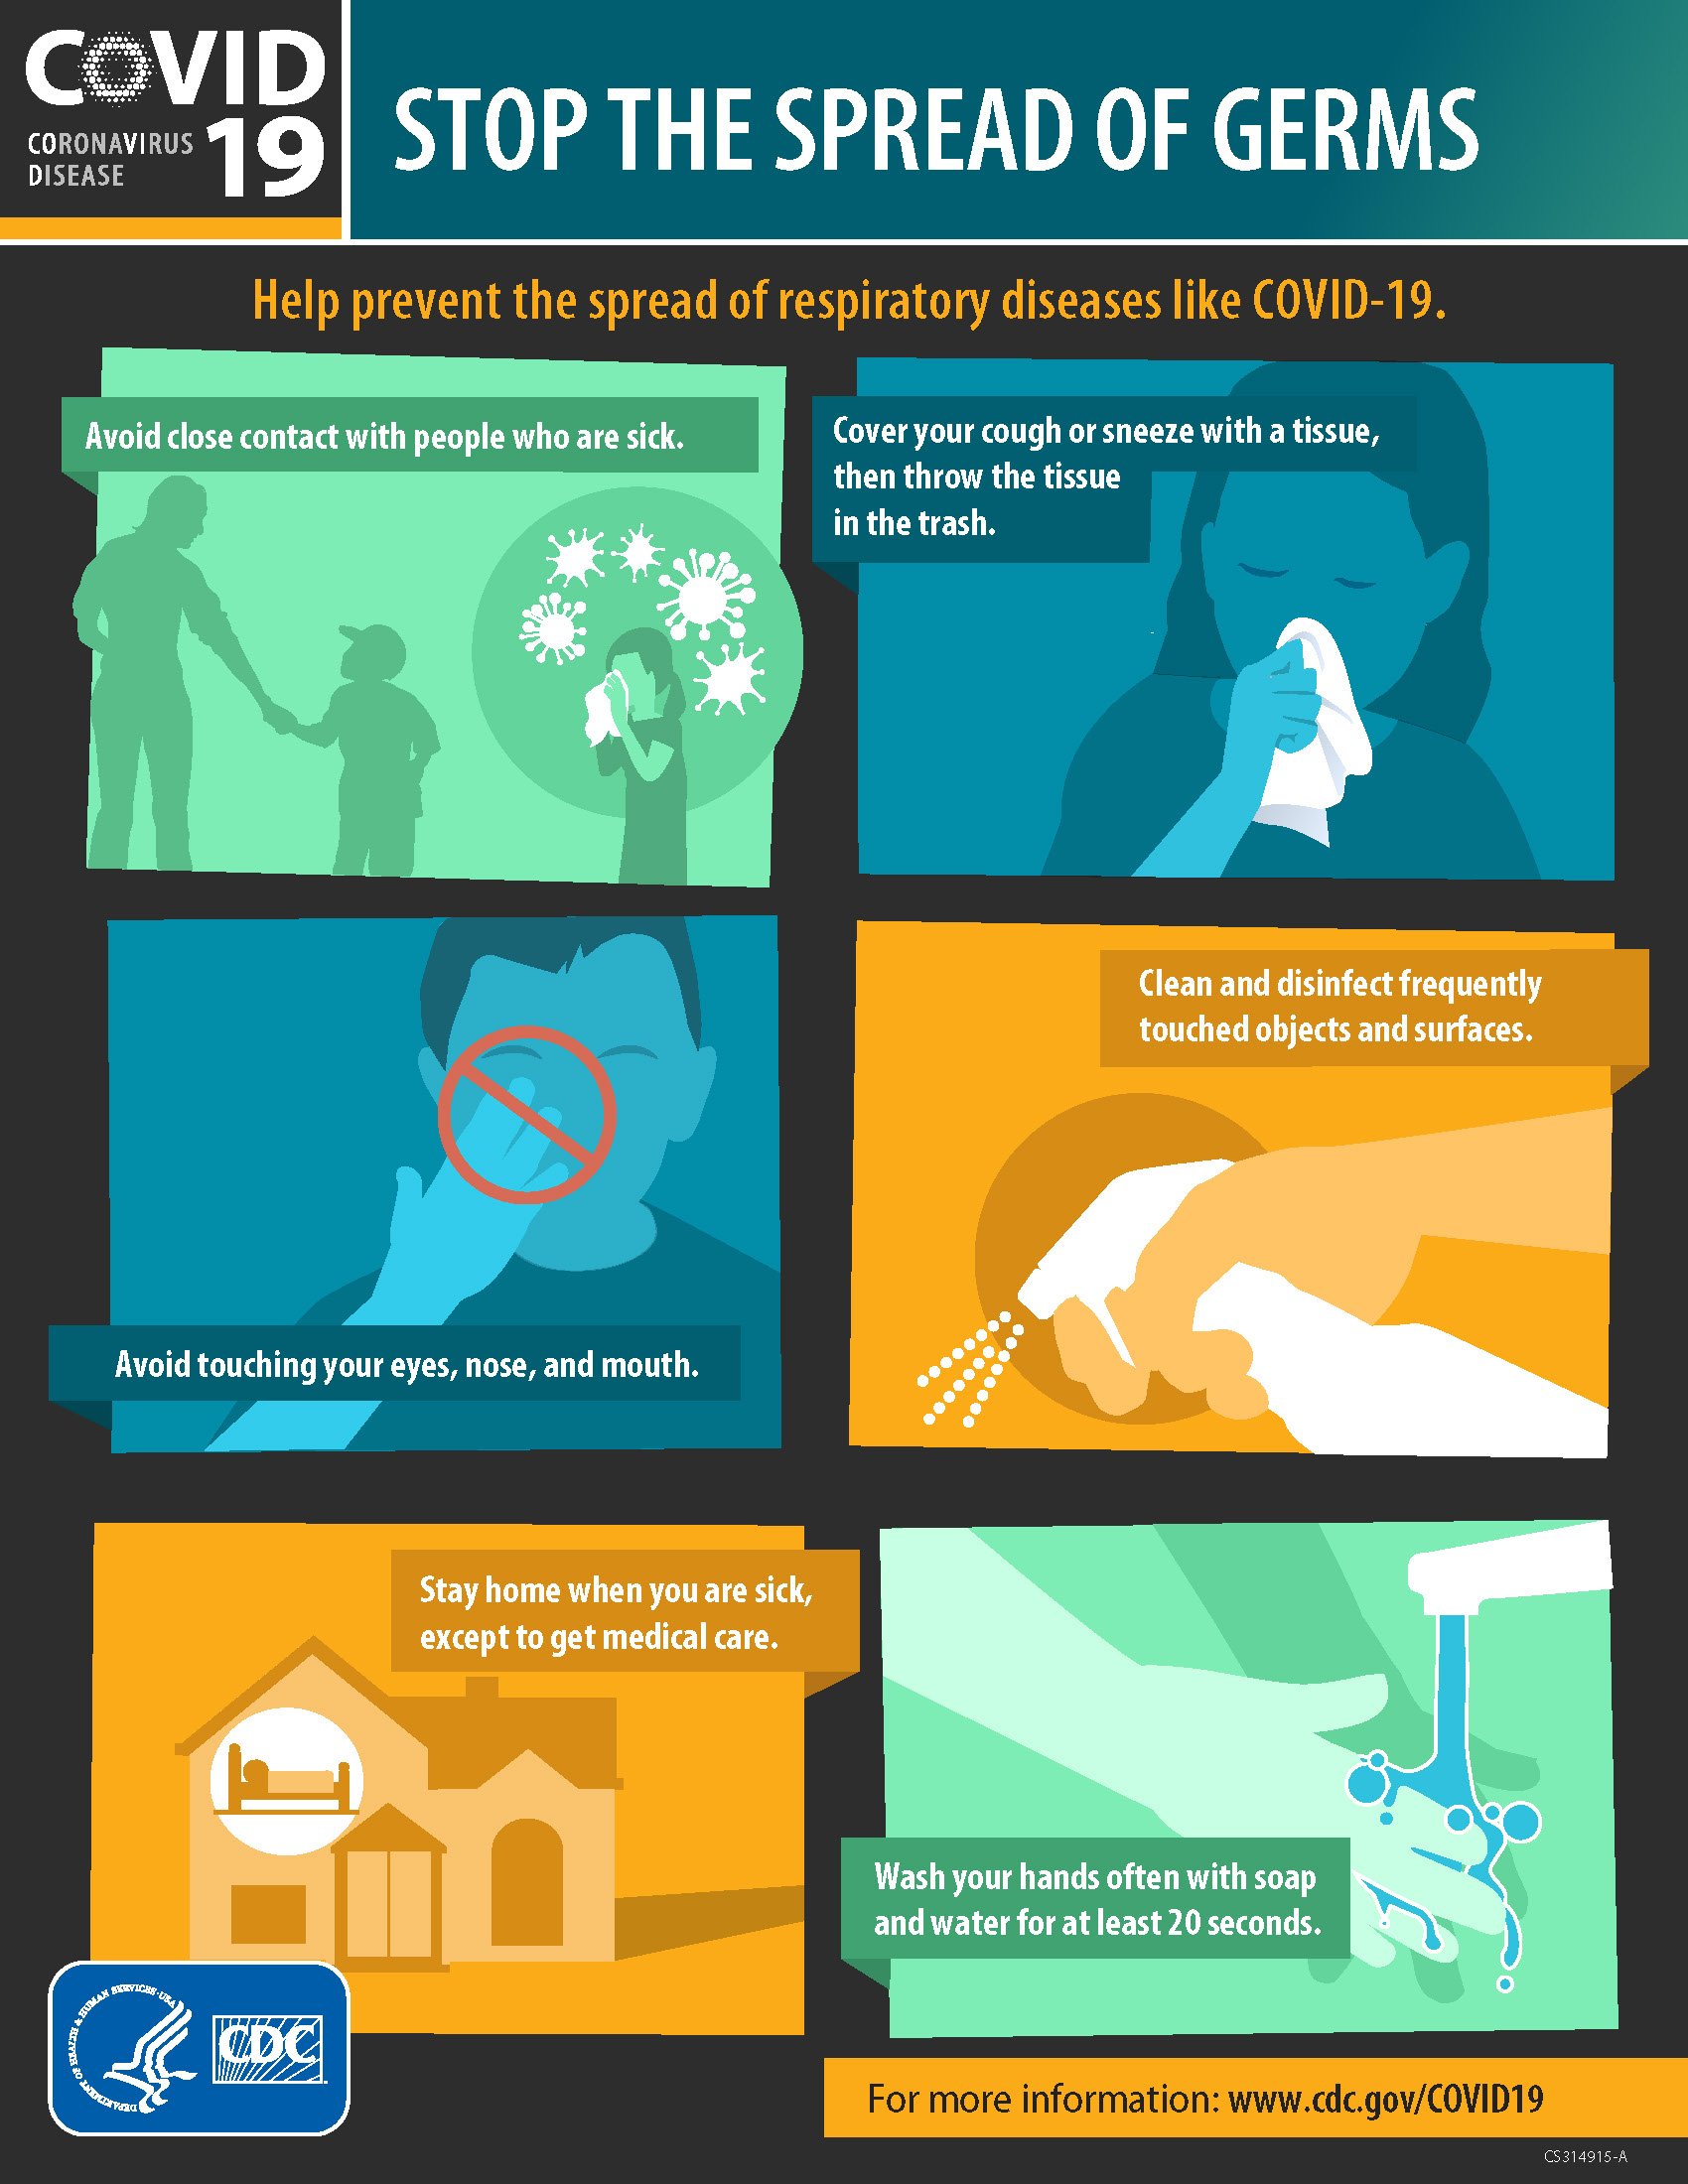 image-stop-the-spread-of-germs